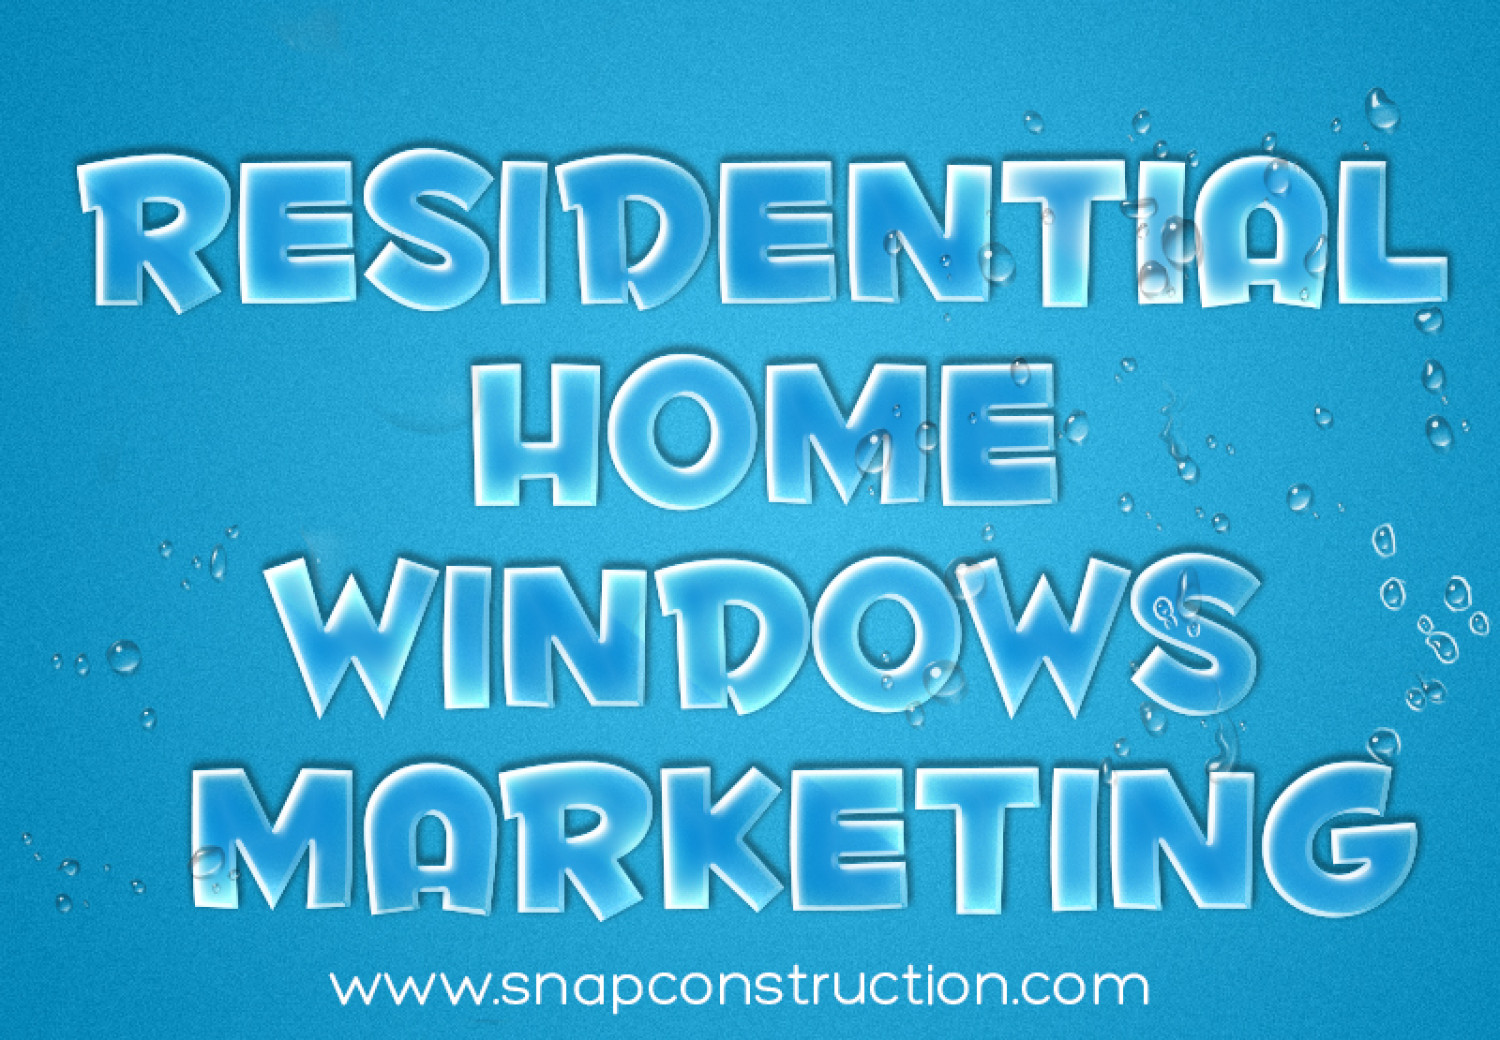 Residential Home Windows Marketing Infographic